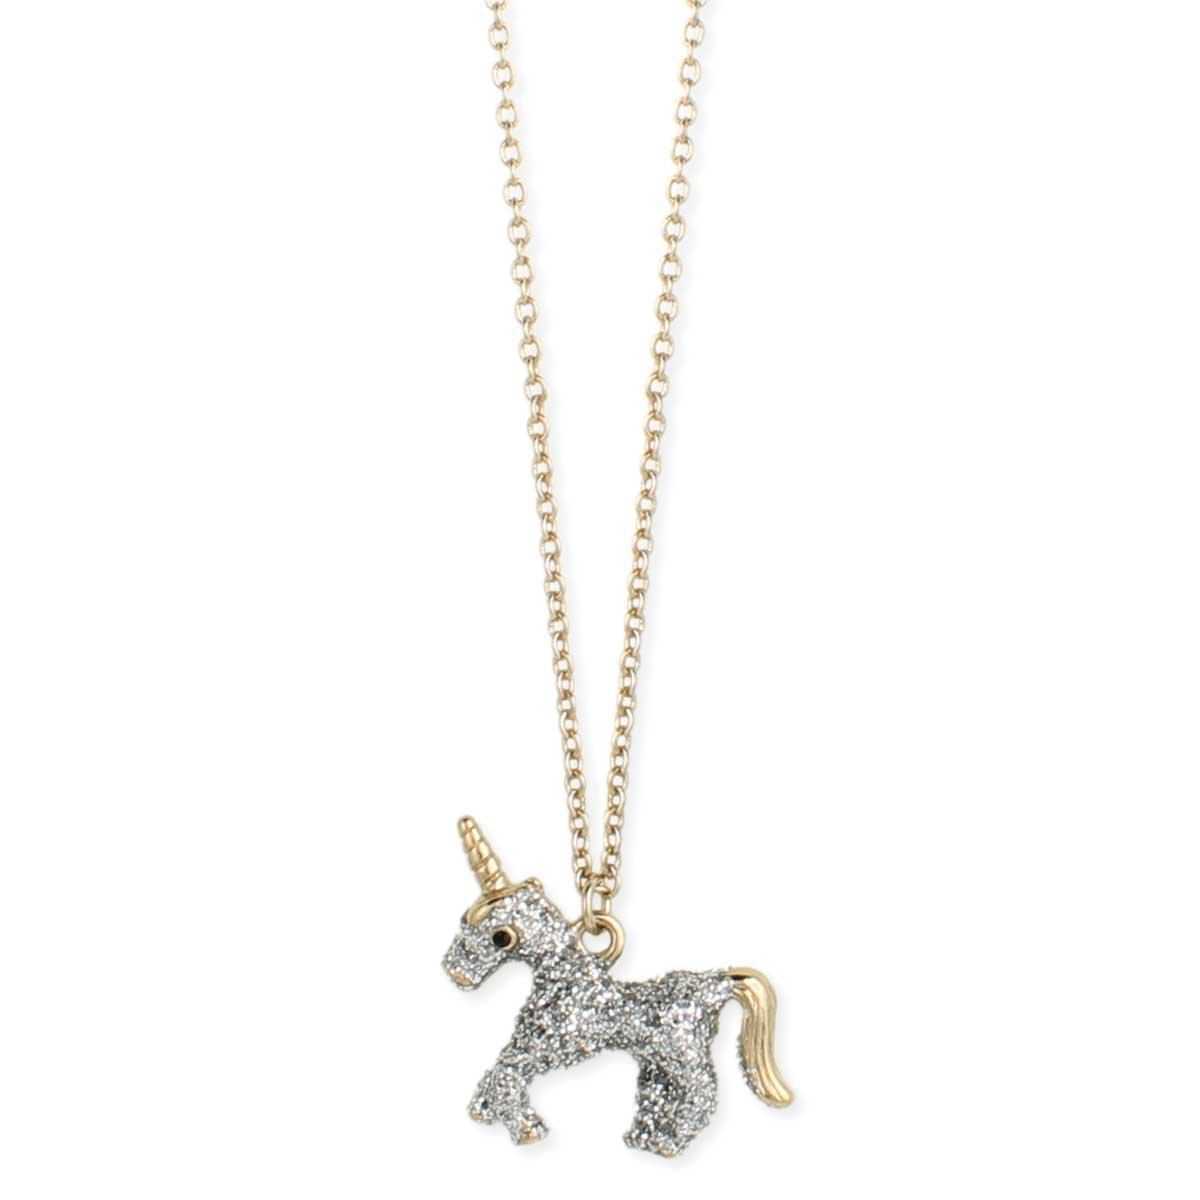 pendant shop gold unicorn necklaces jewellery necklace leivankash